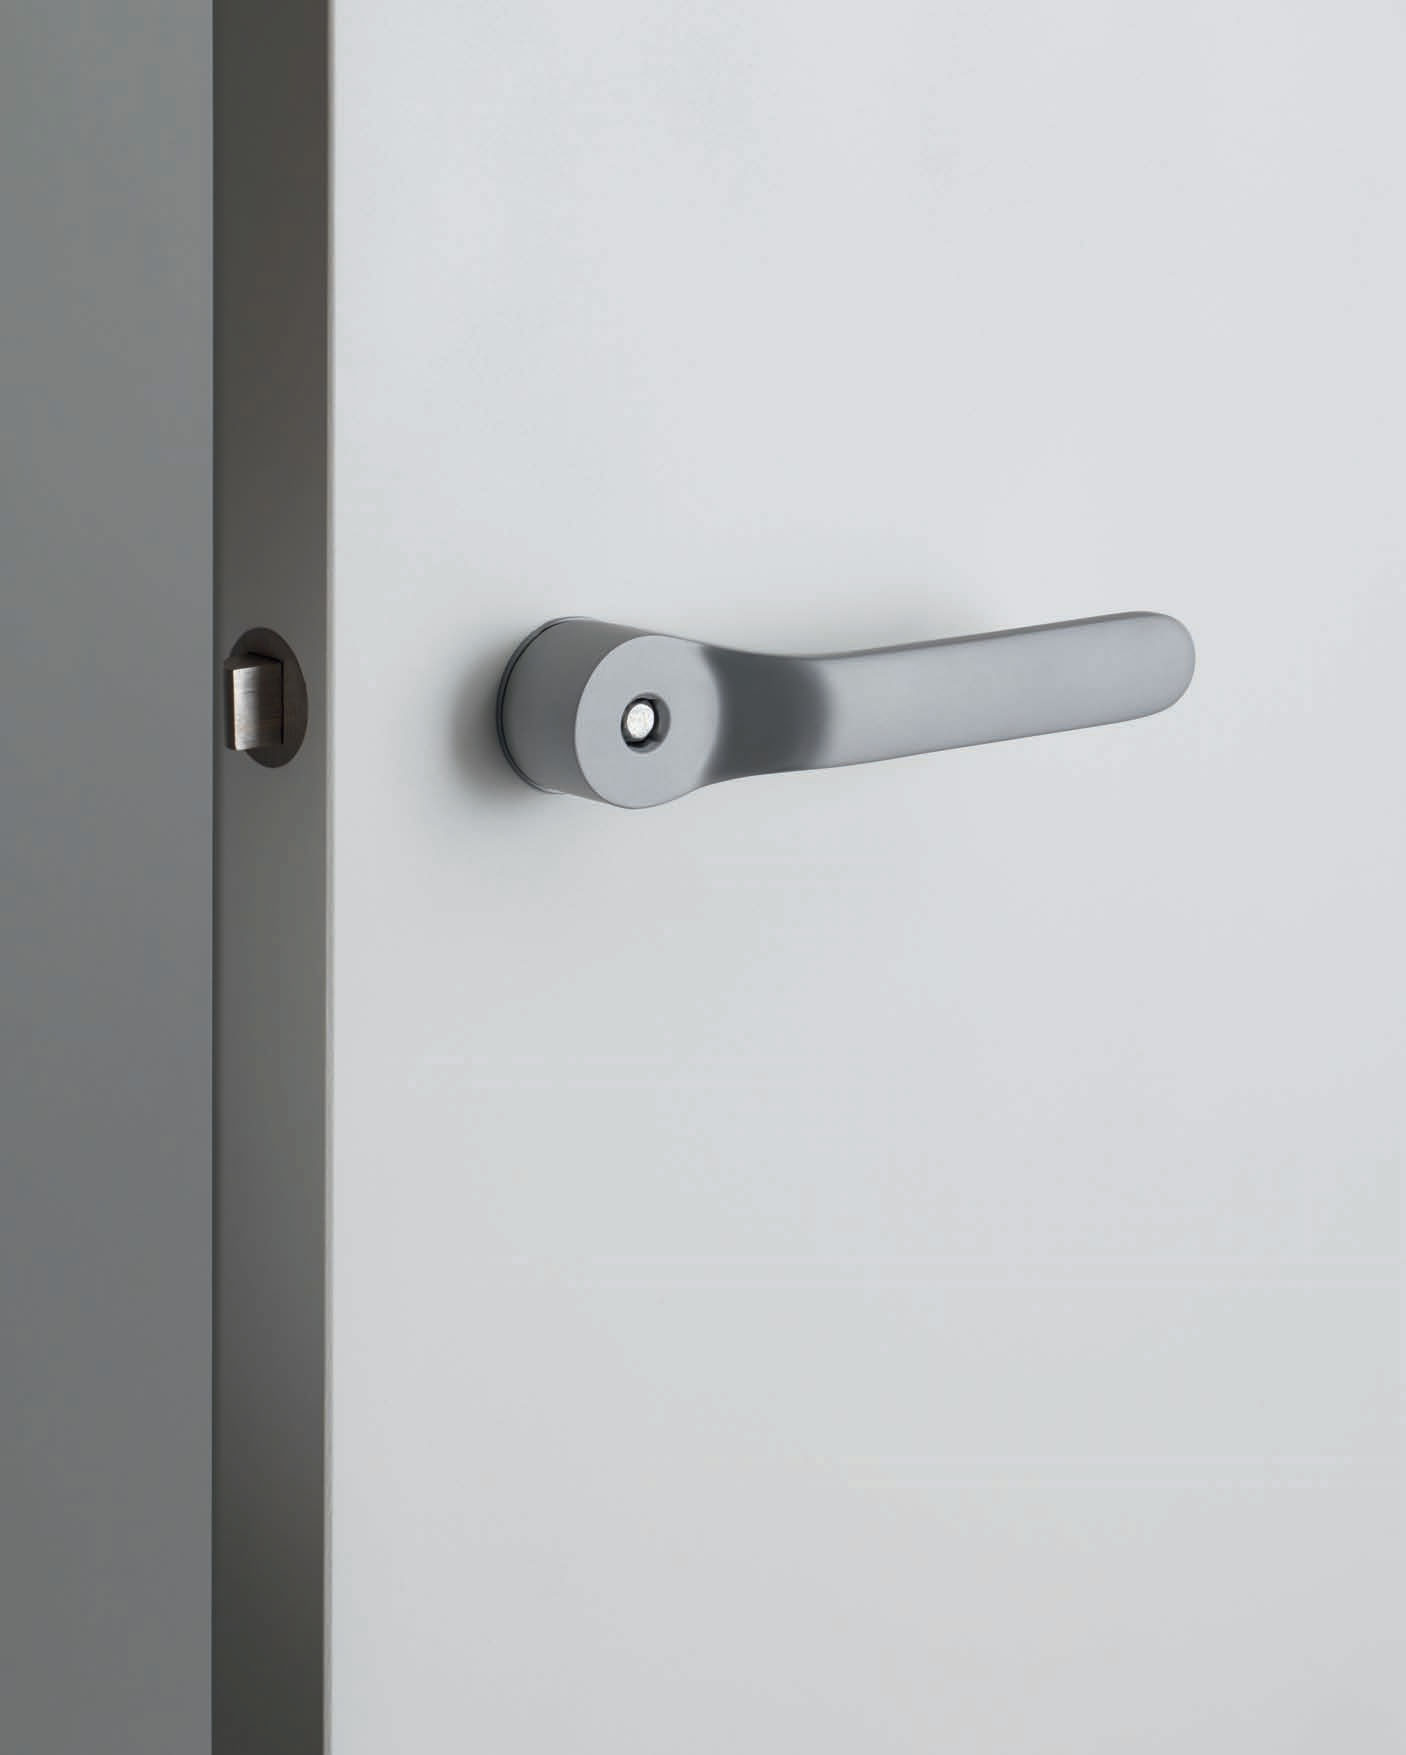 Door Tool, 2001, by Industrial Facility. From our new book Industrial Facility